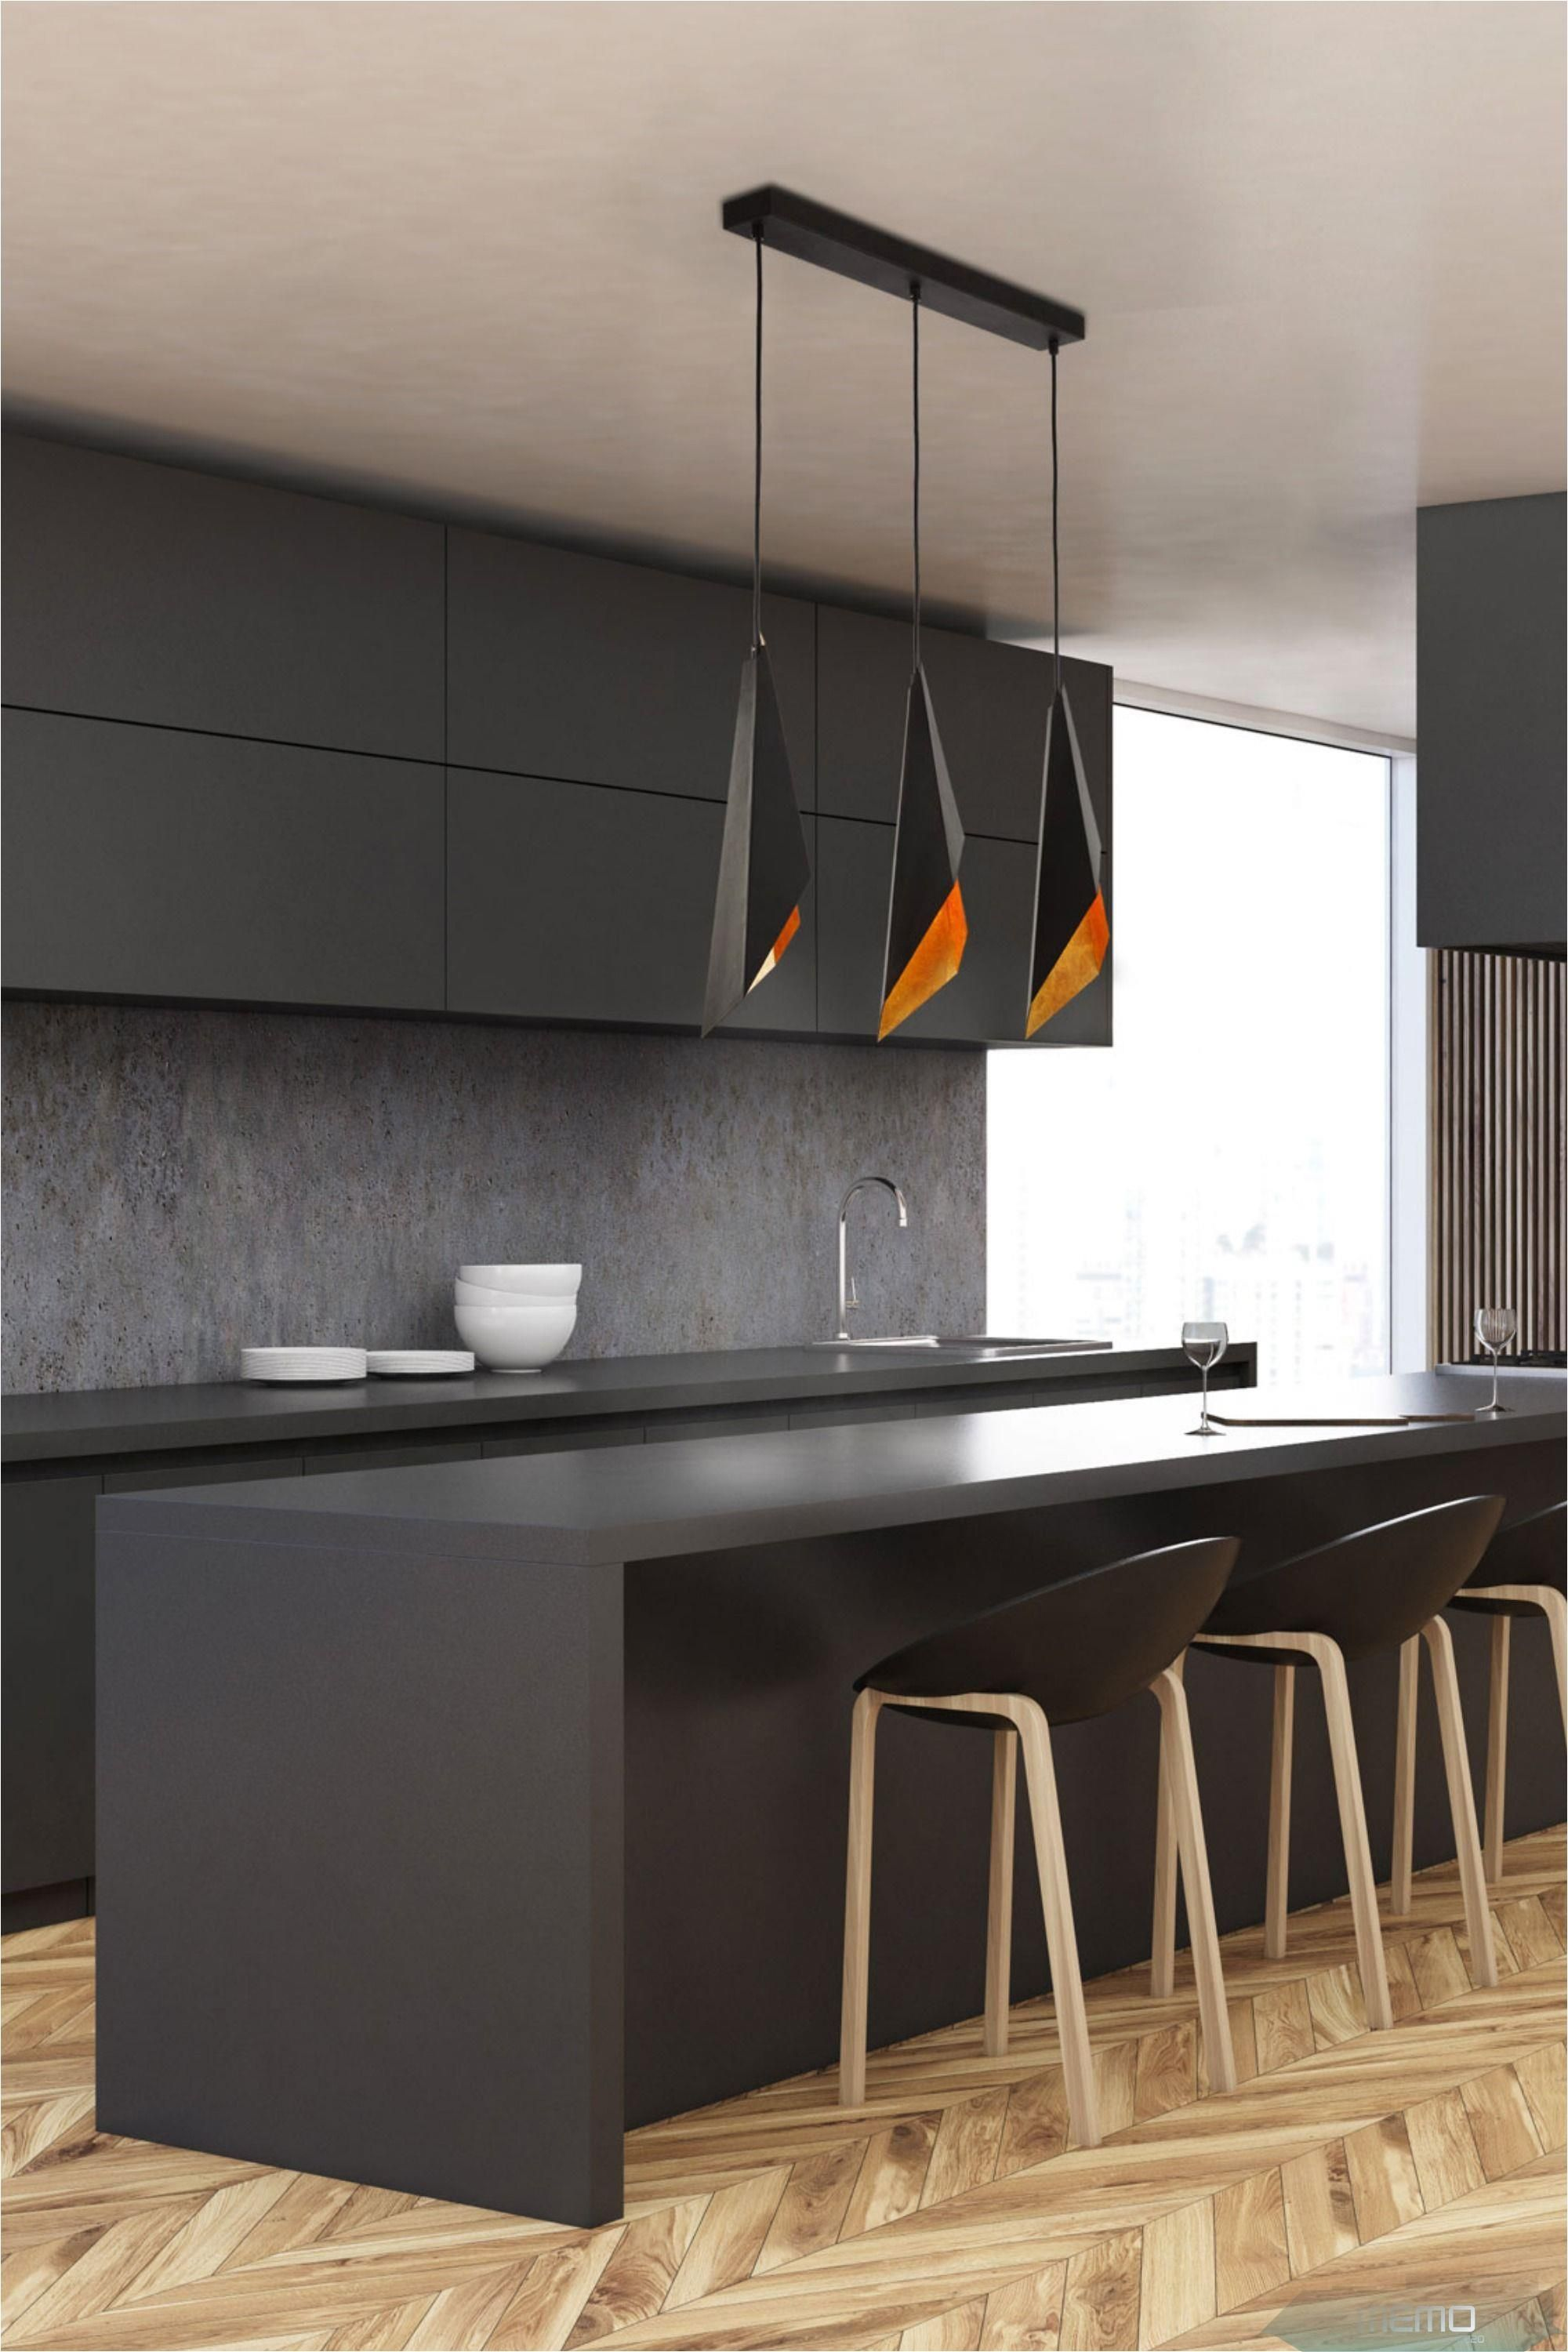 Jun 8 2020 This Pin Was Discovered By Sergio Discover And Save Your Own Pins On Pinterest Modern Kitchen Design Modern Kitchen Interior Design Kitchen